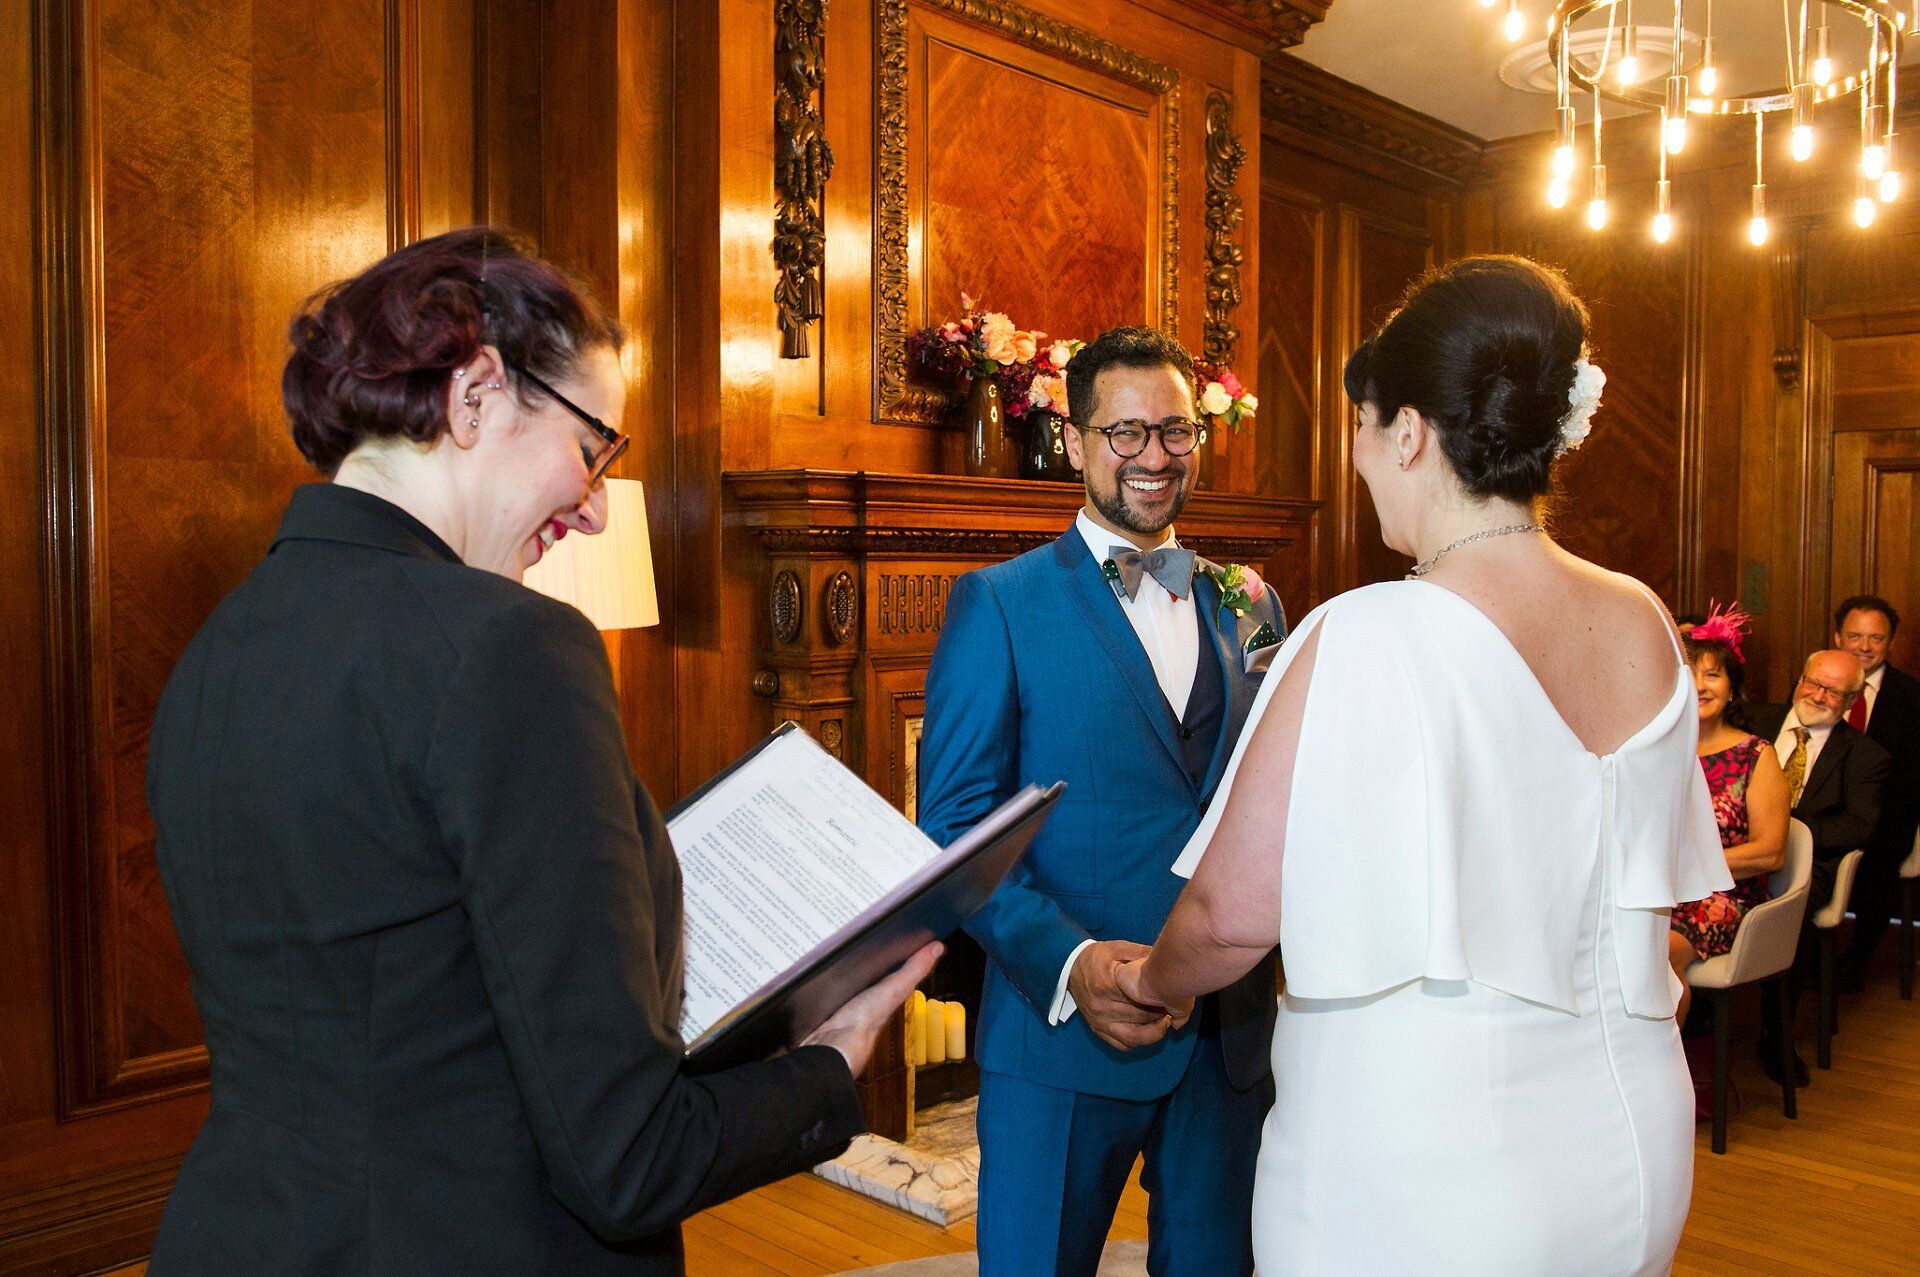 vintage groom laughing during his civil wedding ceremony in the marylebone room by recommended old marylebone town hall wedding photographer emma duggan